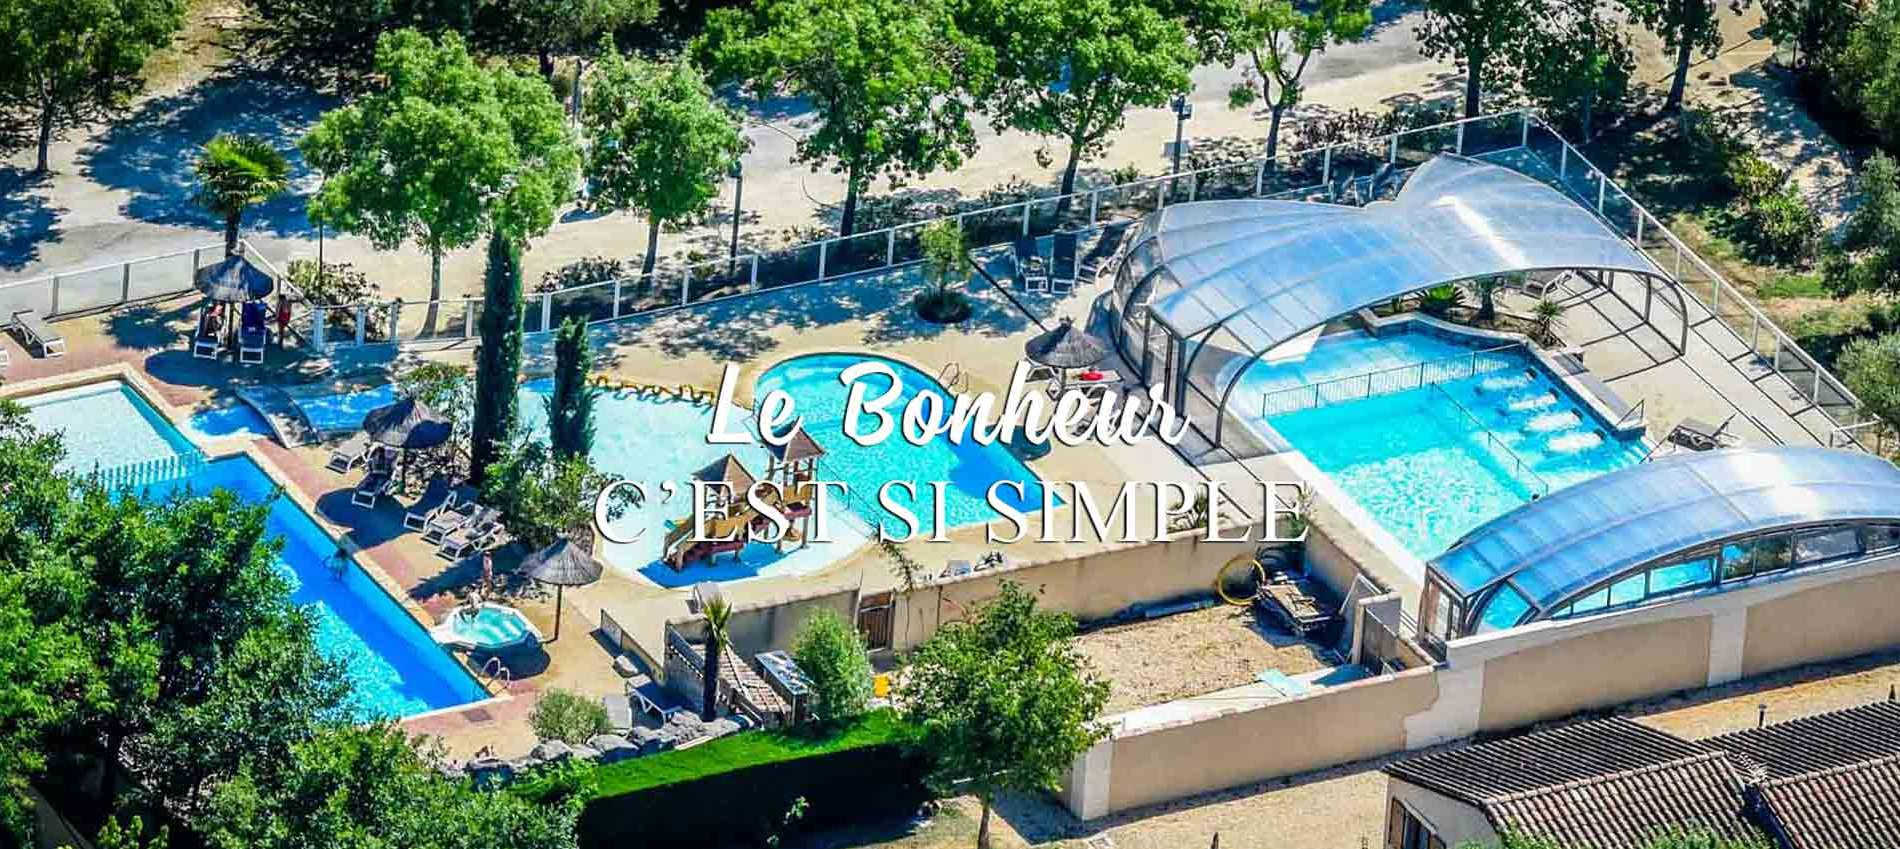 camping 4 toiles location ardeche camping location ardeche camping piscine location ardeche